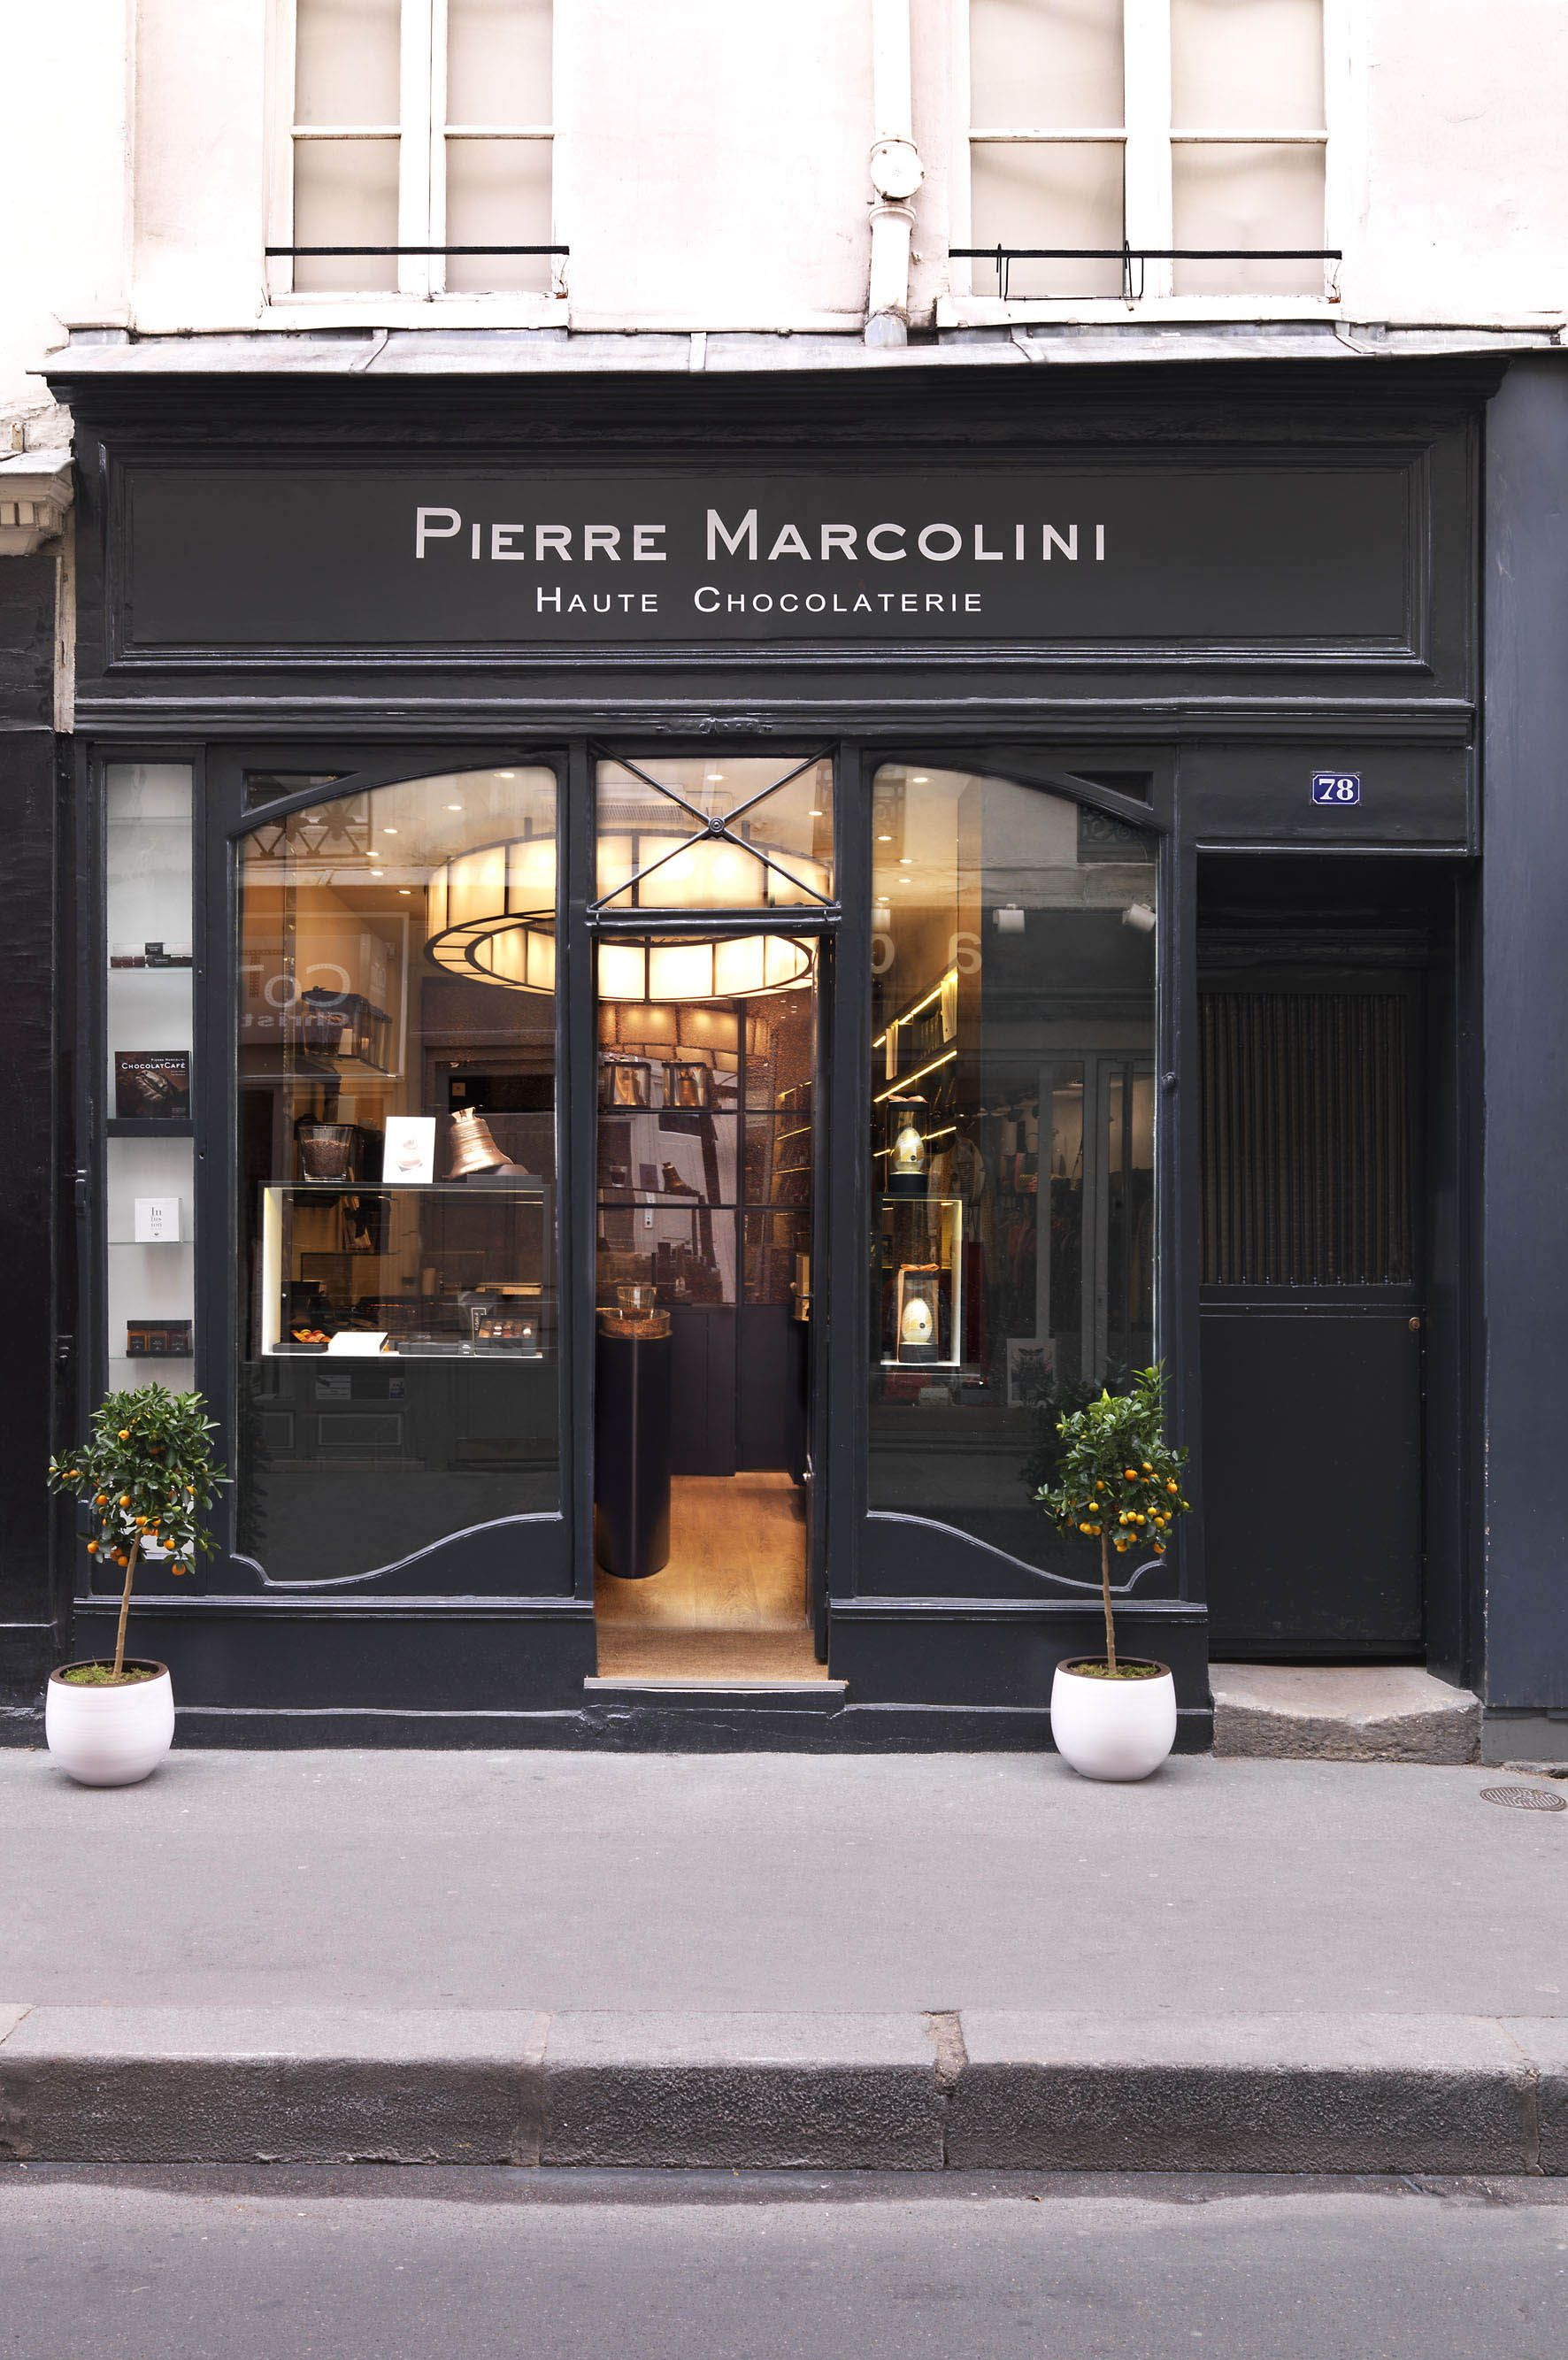 exterior of pierre marcolini haute chocolaterie a gournet chocolates store in paris france. Black Bedroom Furniture Sets. Home Design Ideas